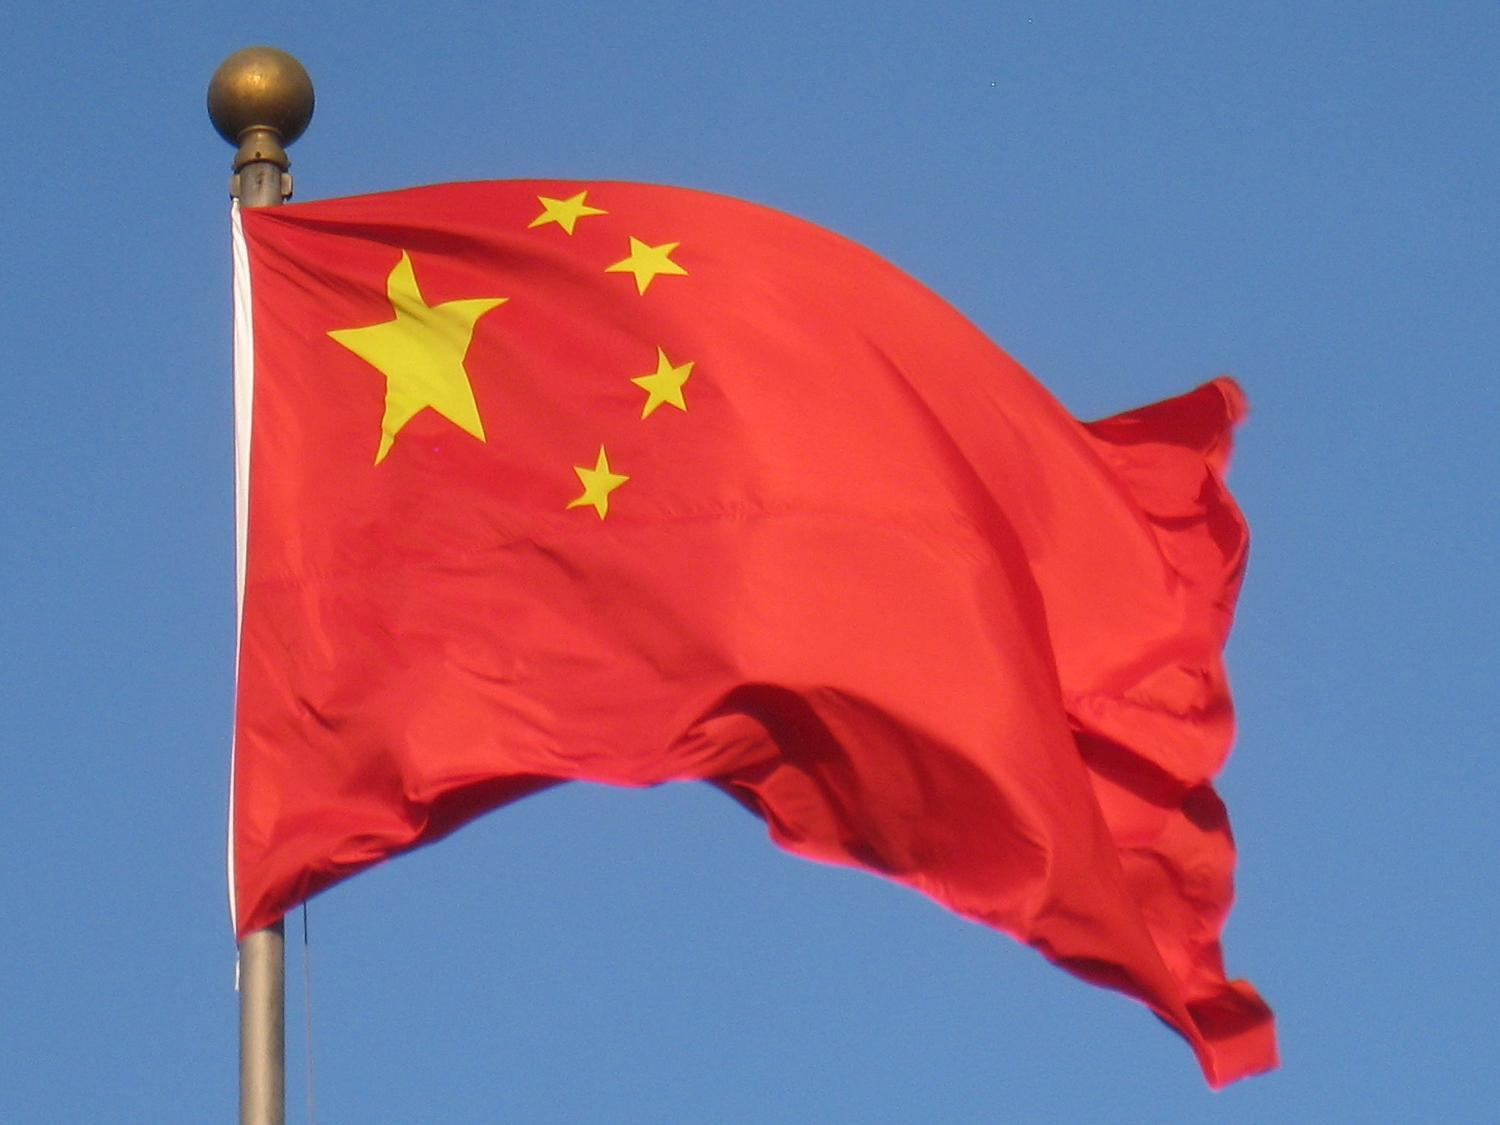 Chinese flag blowing in the wind